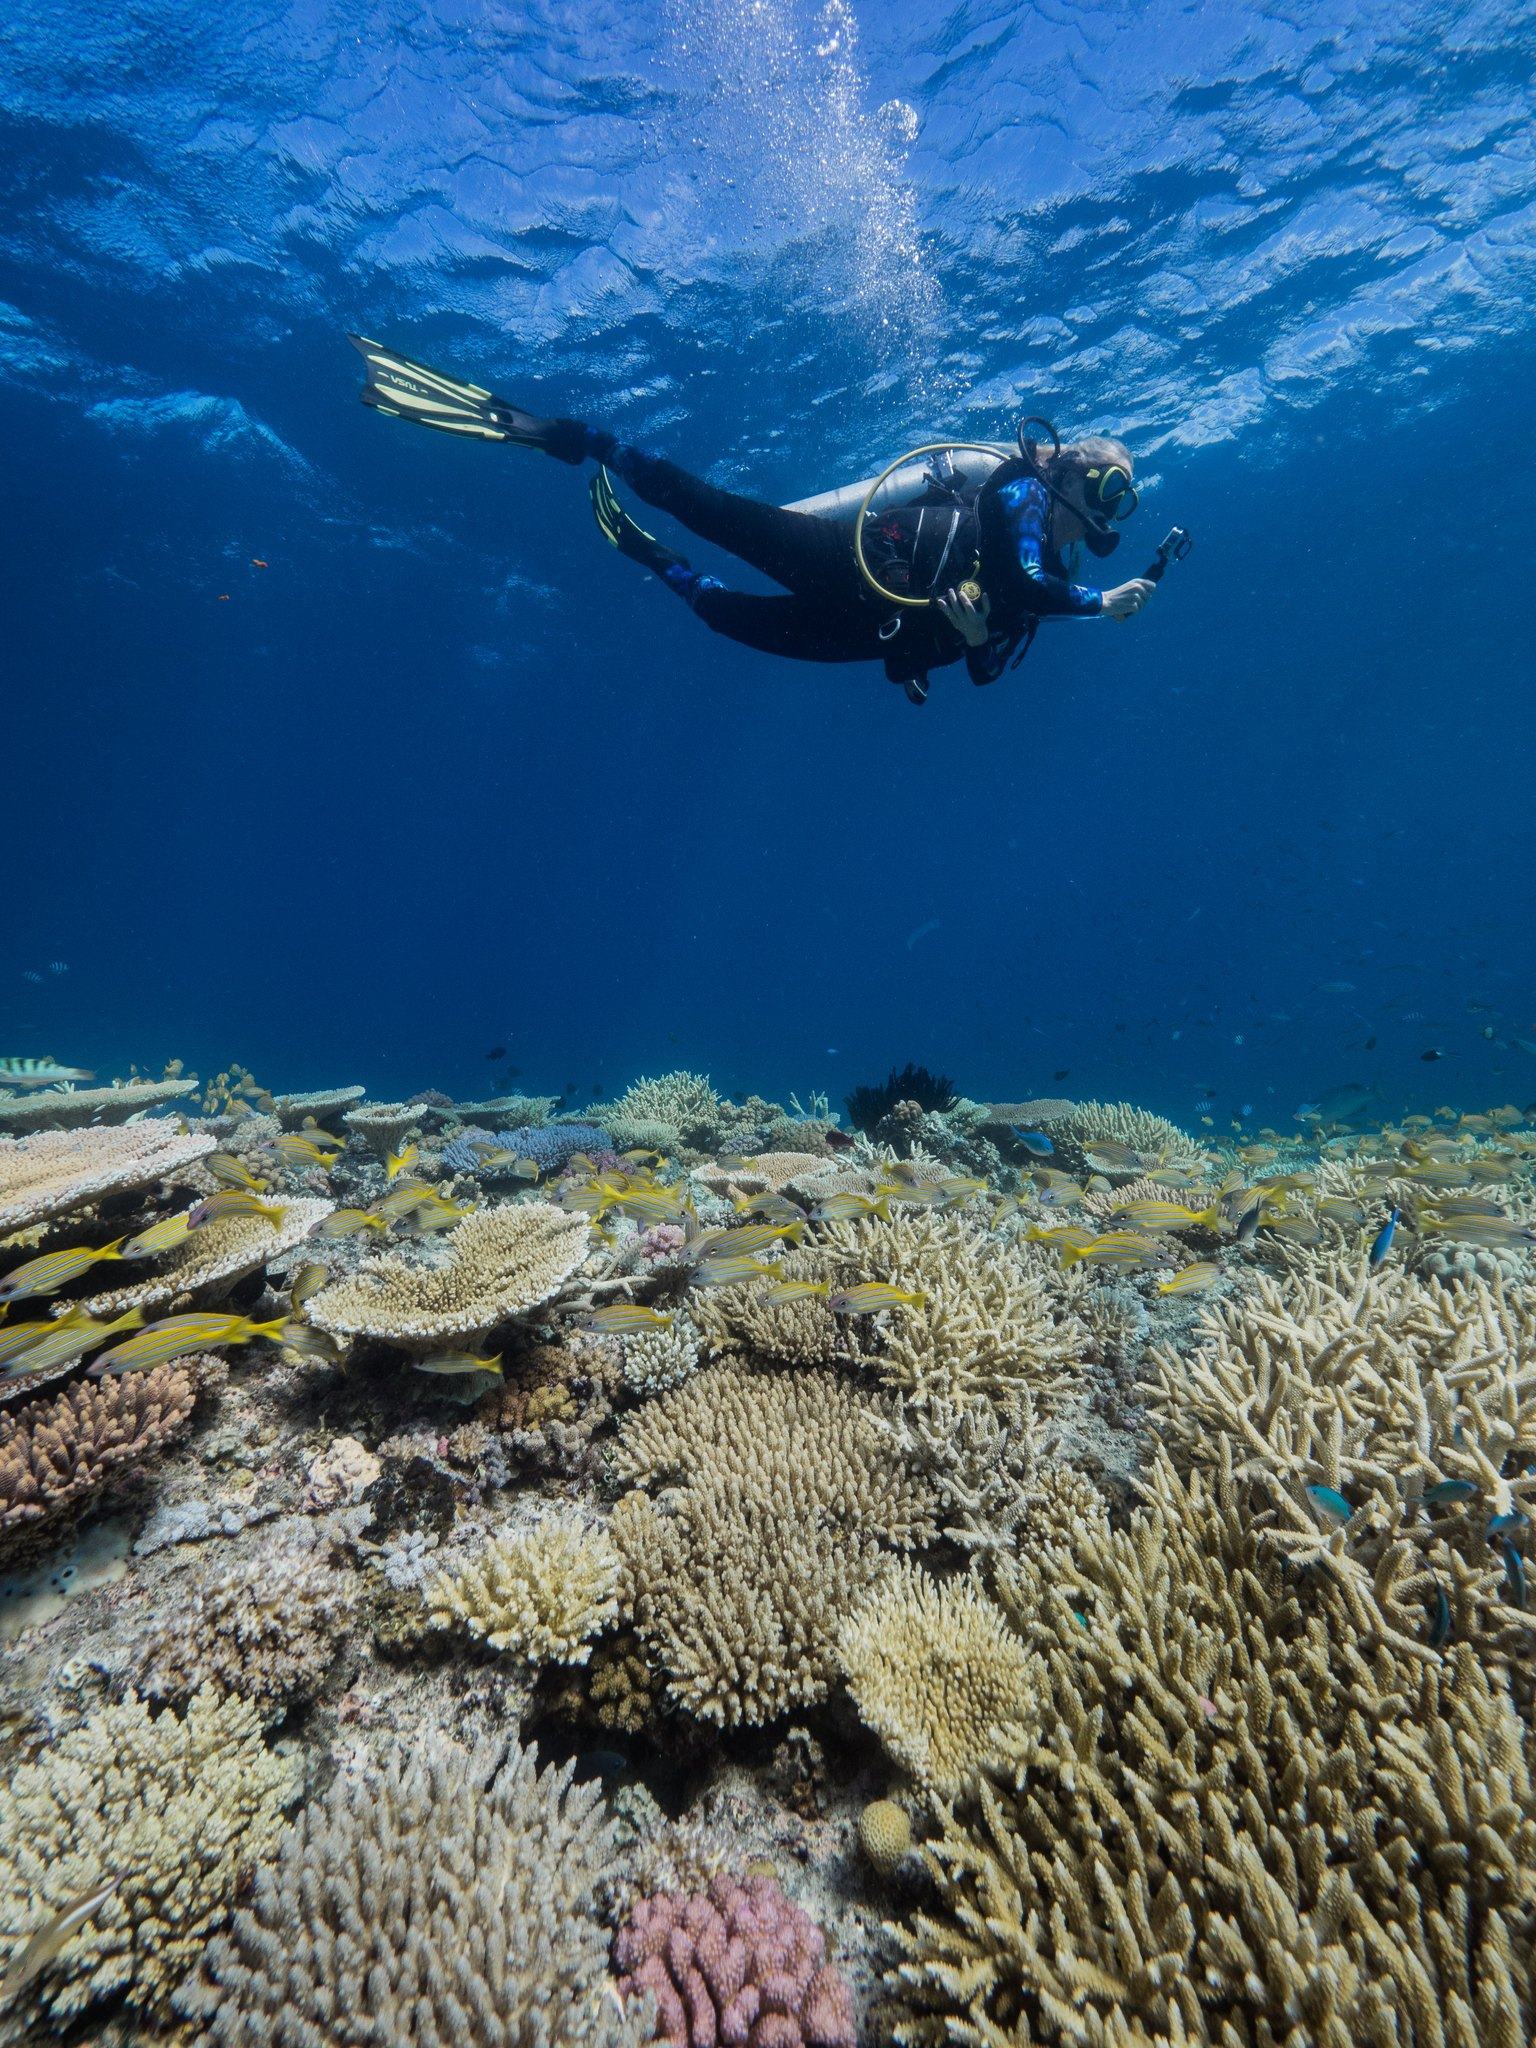 Diver taking survey photos for the Great Reef Census at the Ribbon Reefs. Credit: Harriet Spark. Grumpy Turtle Creative